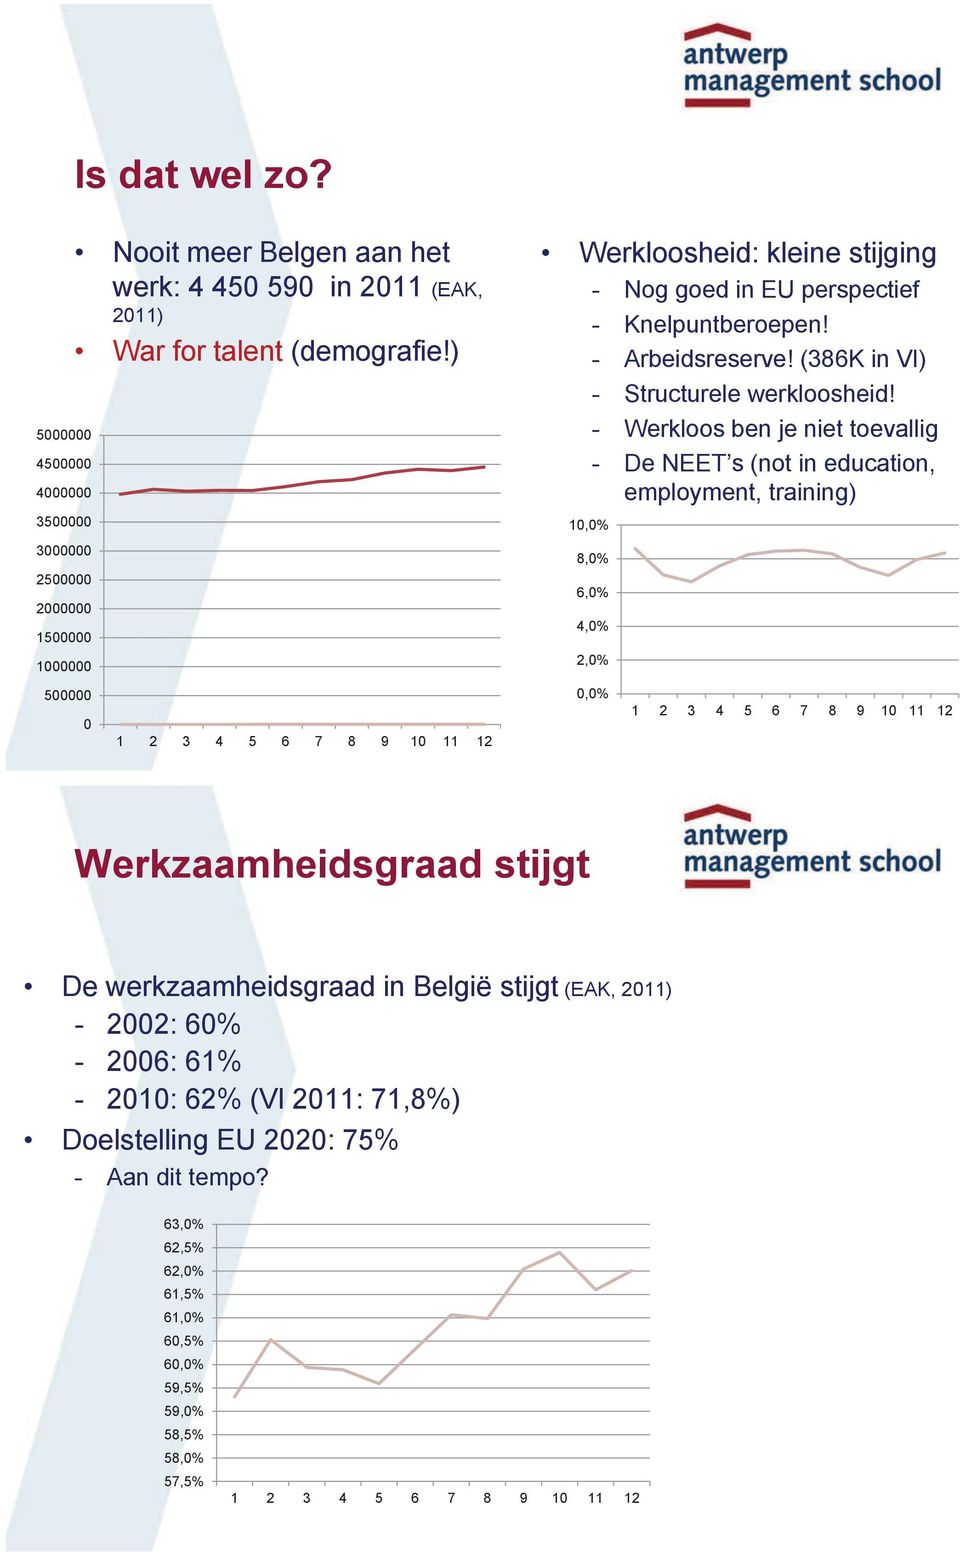 - Werkloos ben je niet toevallig - De NEET s (not in education, employment, training) 10,0% 8,0% 6,0% 4,0% 2,0% 500000 0 1 2 3 4 5 6 7 8 9 10 11 12 0,0% 1 2 3 4 5 6 7 8 9 10 11 12